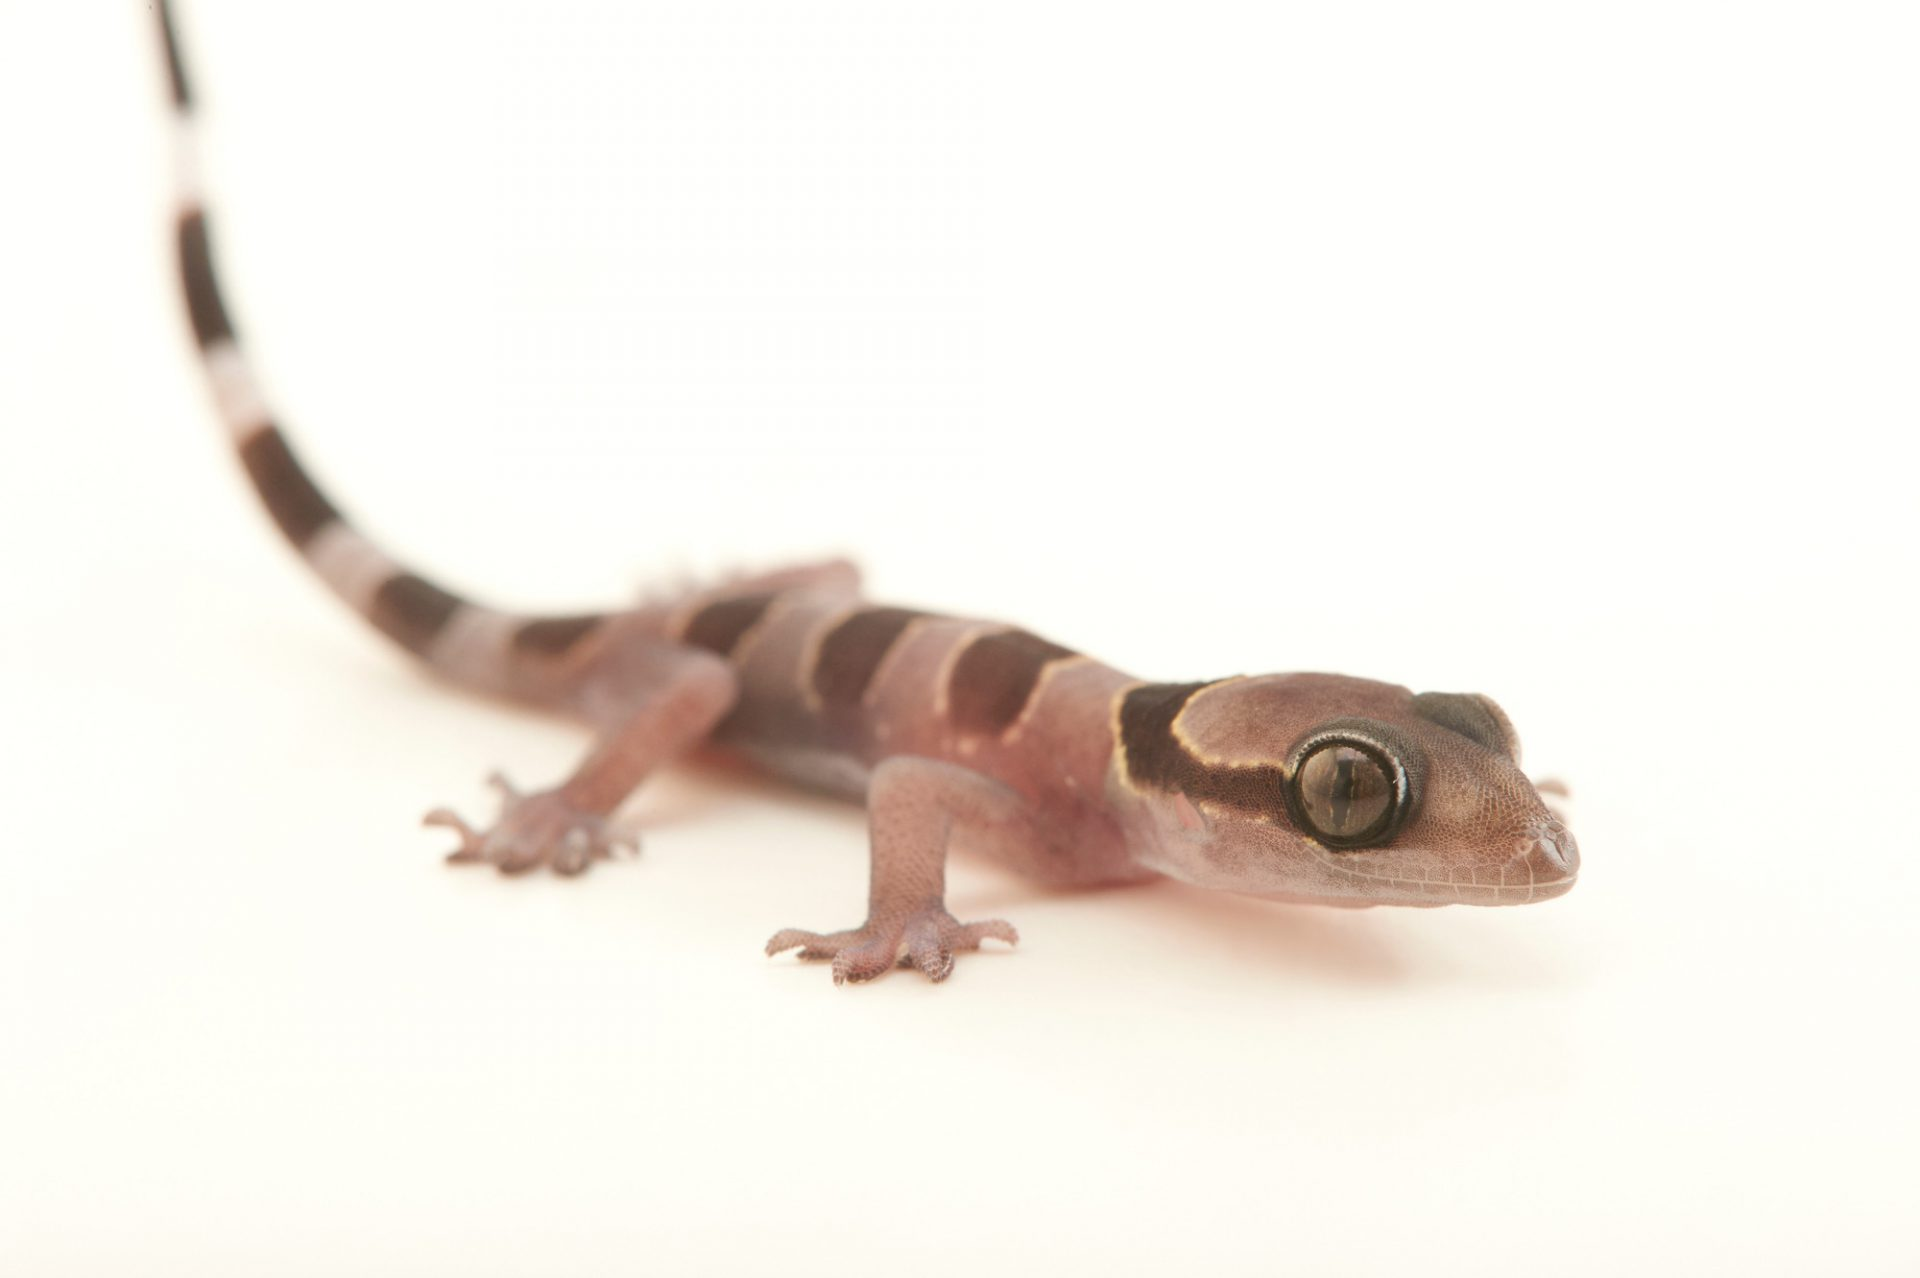 Picture of a West African forest gecko (Hemidactylus kyaboboensis) from a private collection.